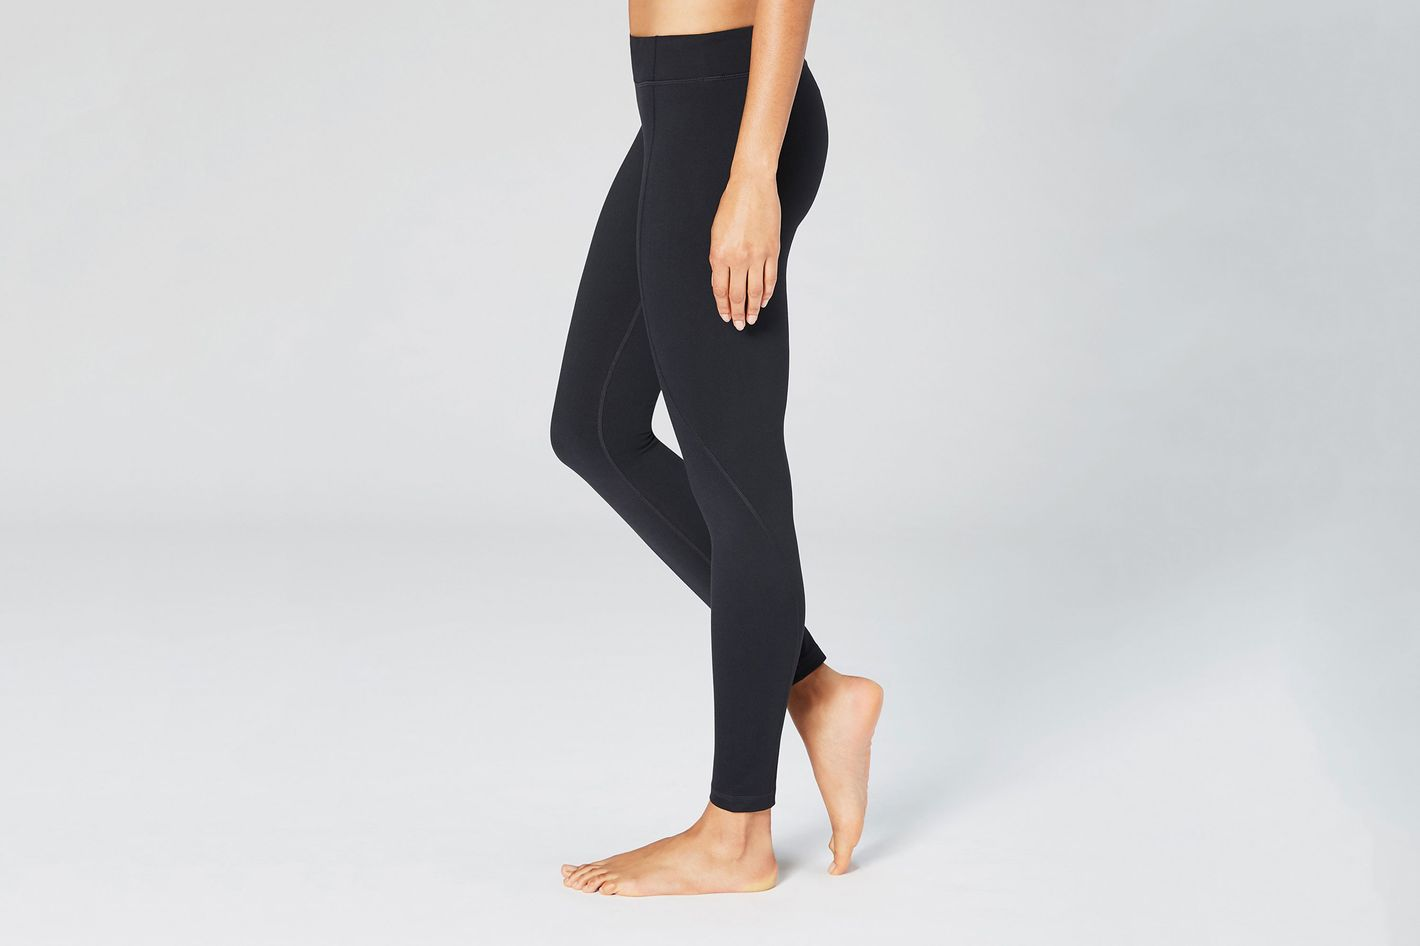 29336b5e84 Core 10 Women's 'Build Your Own' Yoga Pant